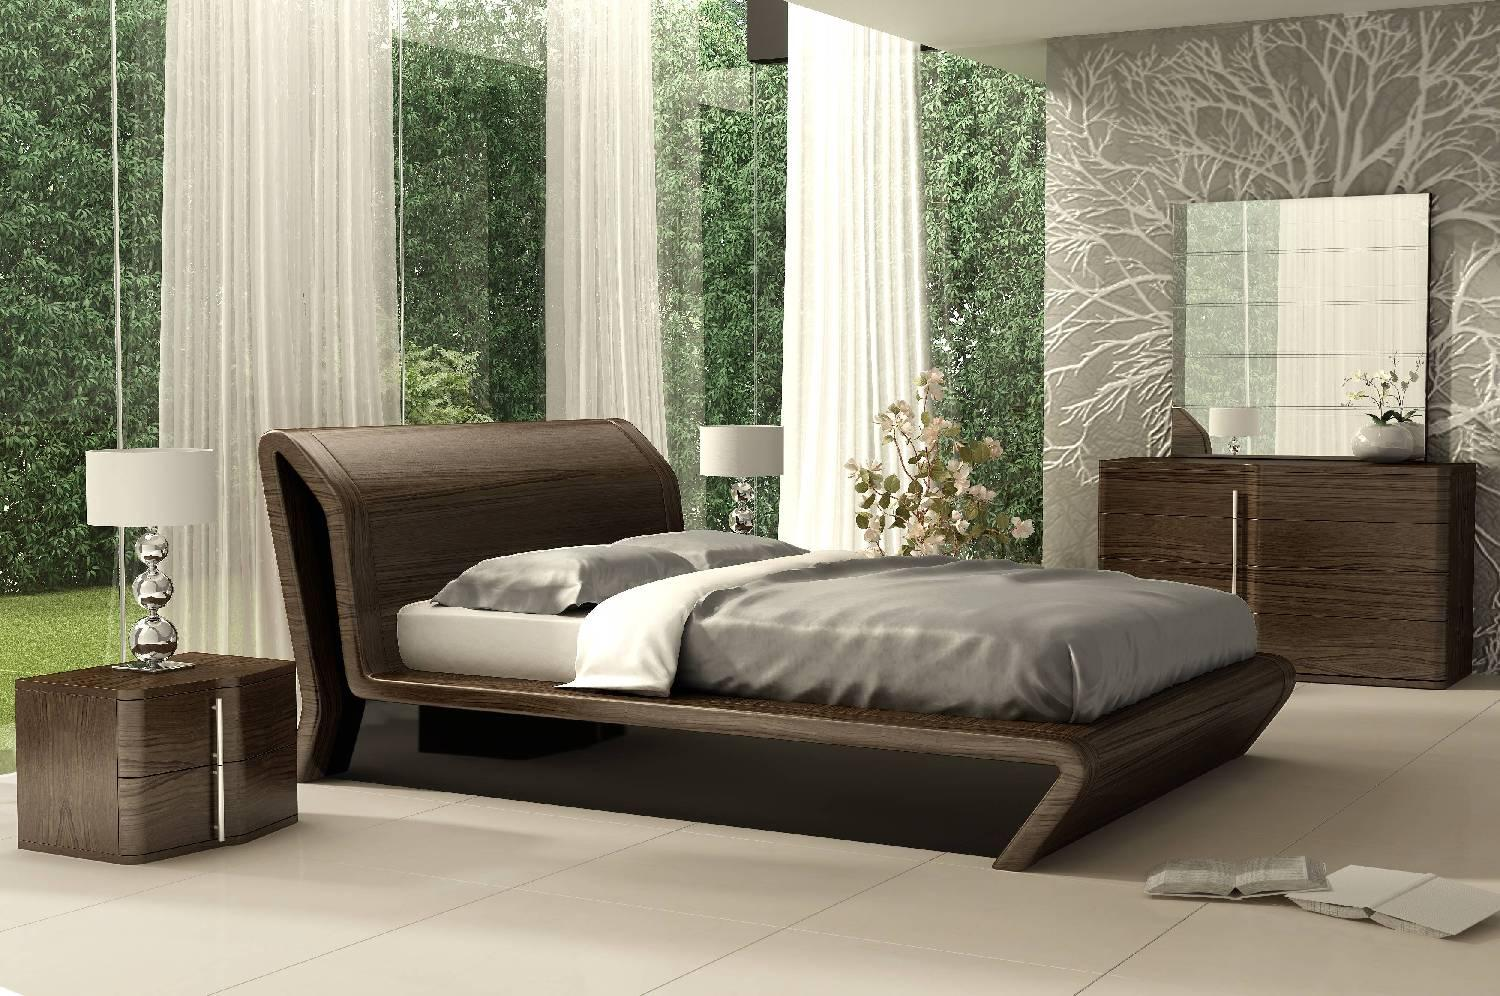 Arredamento Alternativo Camera Da Letto : Master Bedroom Ideas with ...